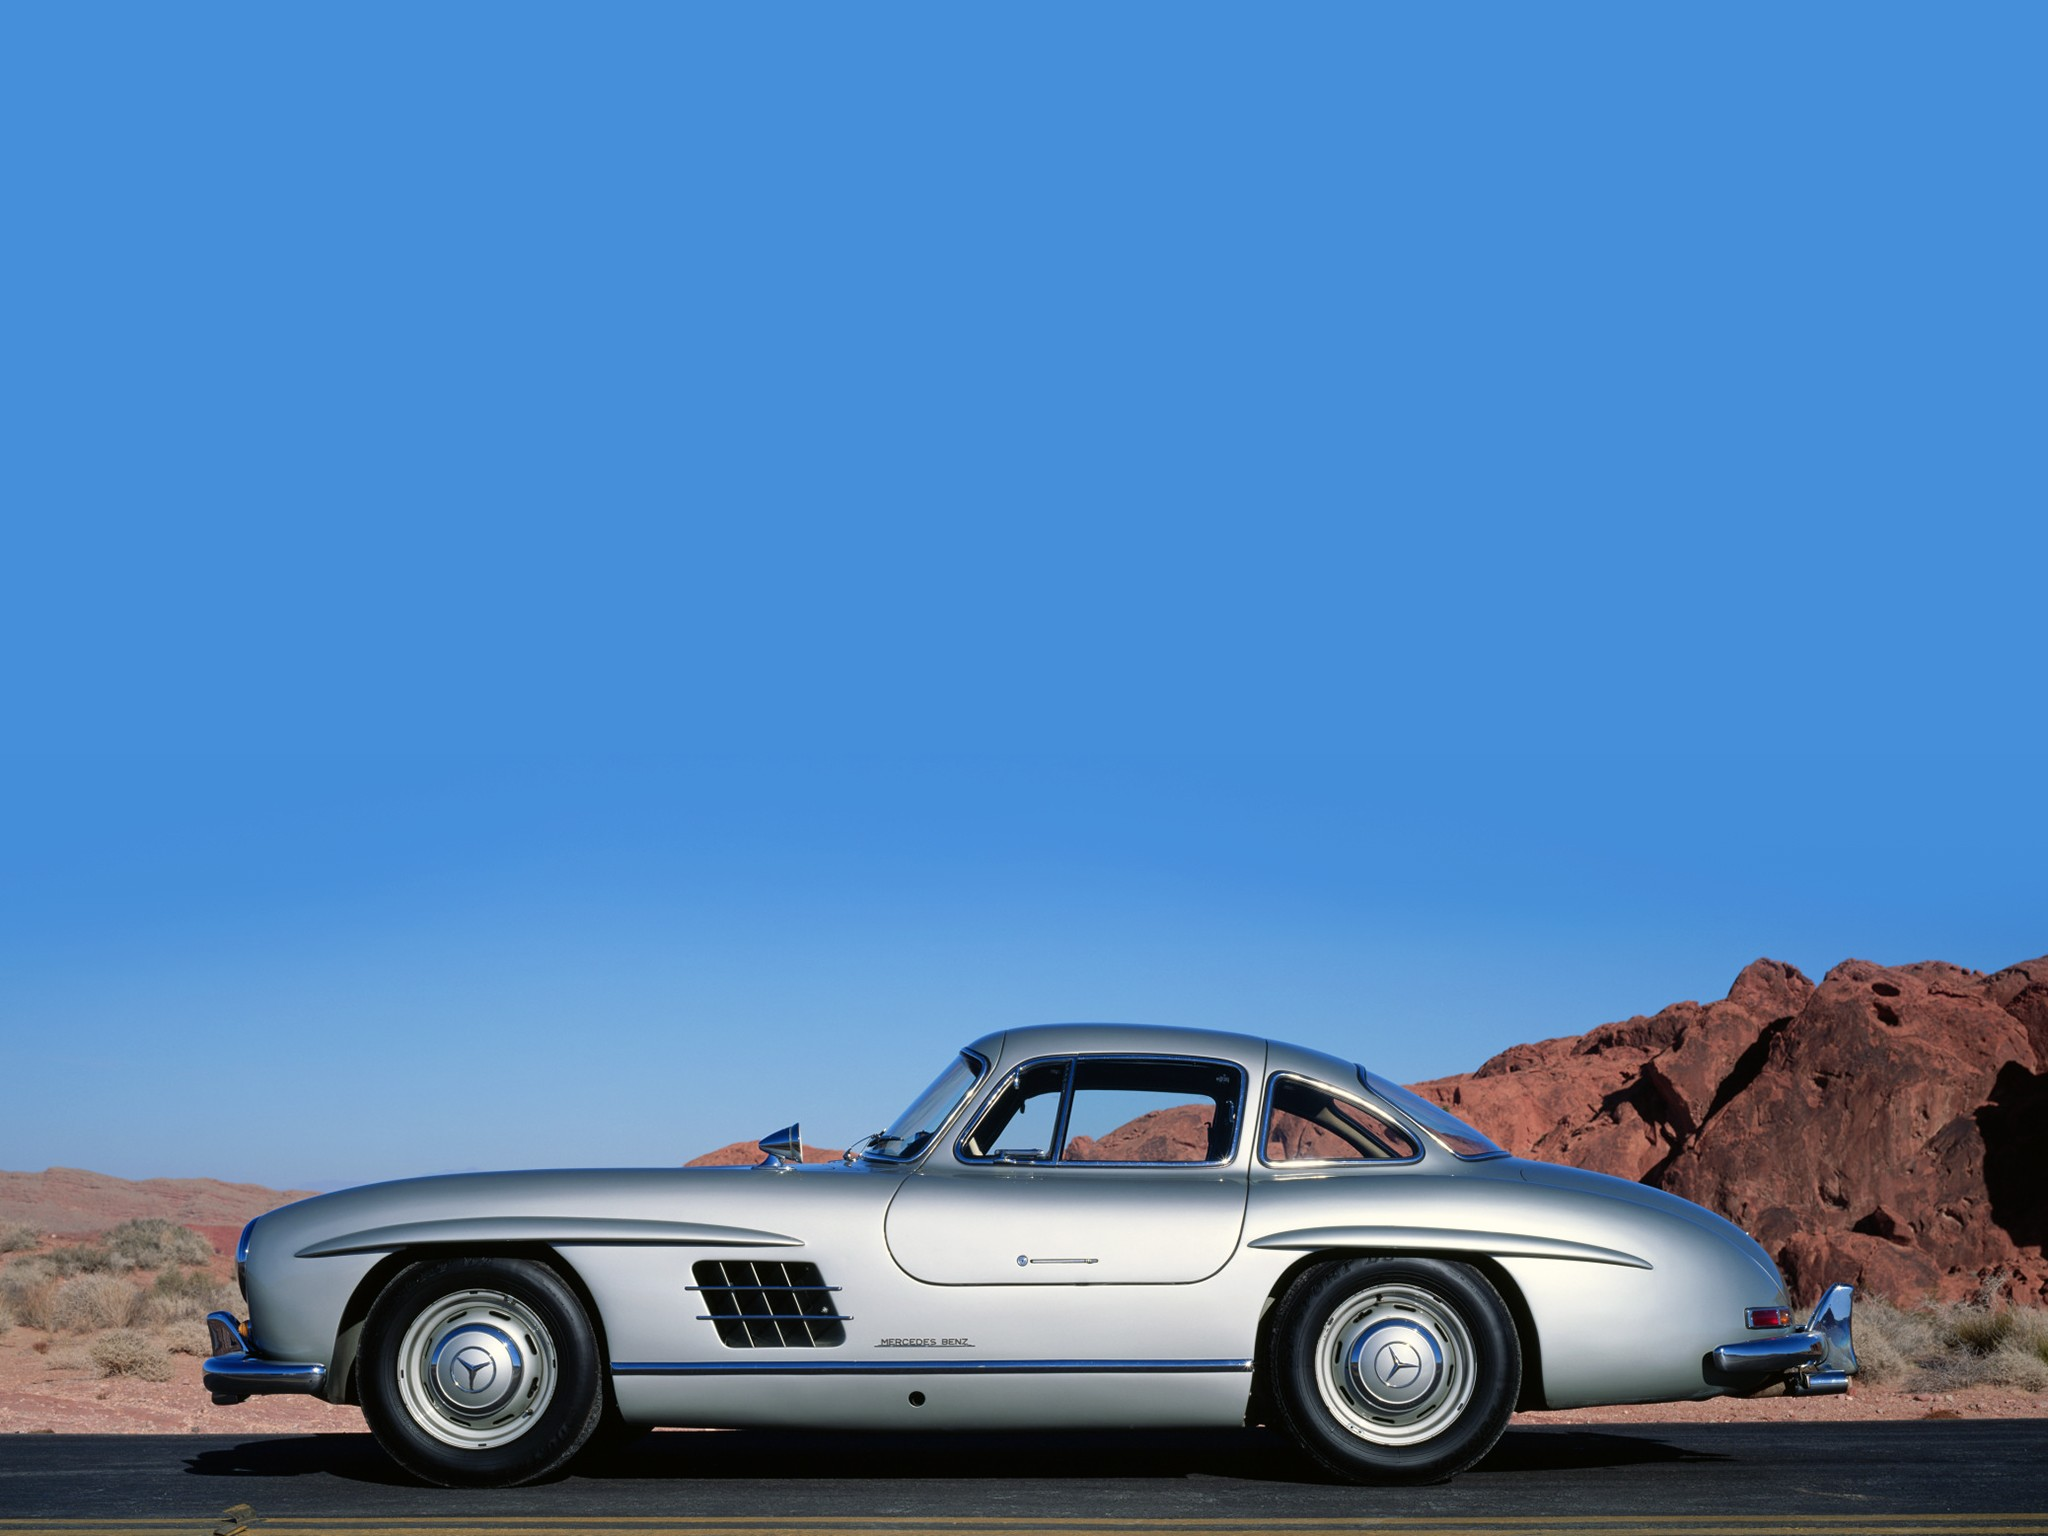 Mercedes benz 300 sl coupe w198 specs 1954 1955 1956 for Mercedes benz gas chambers